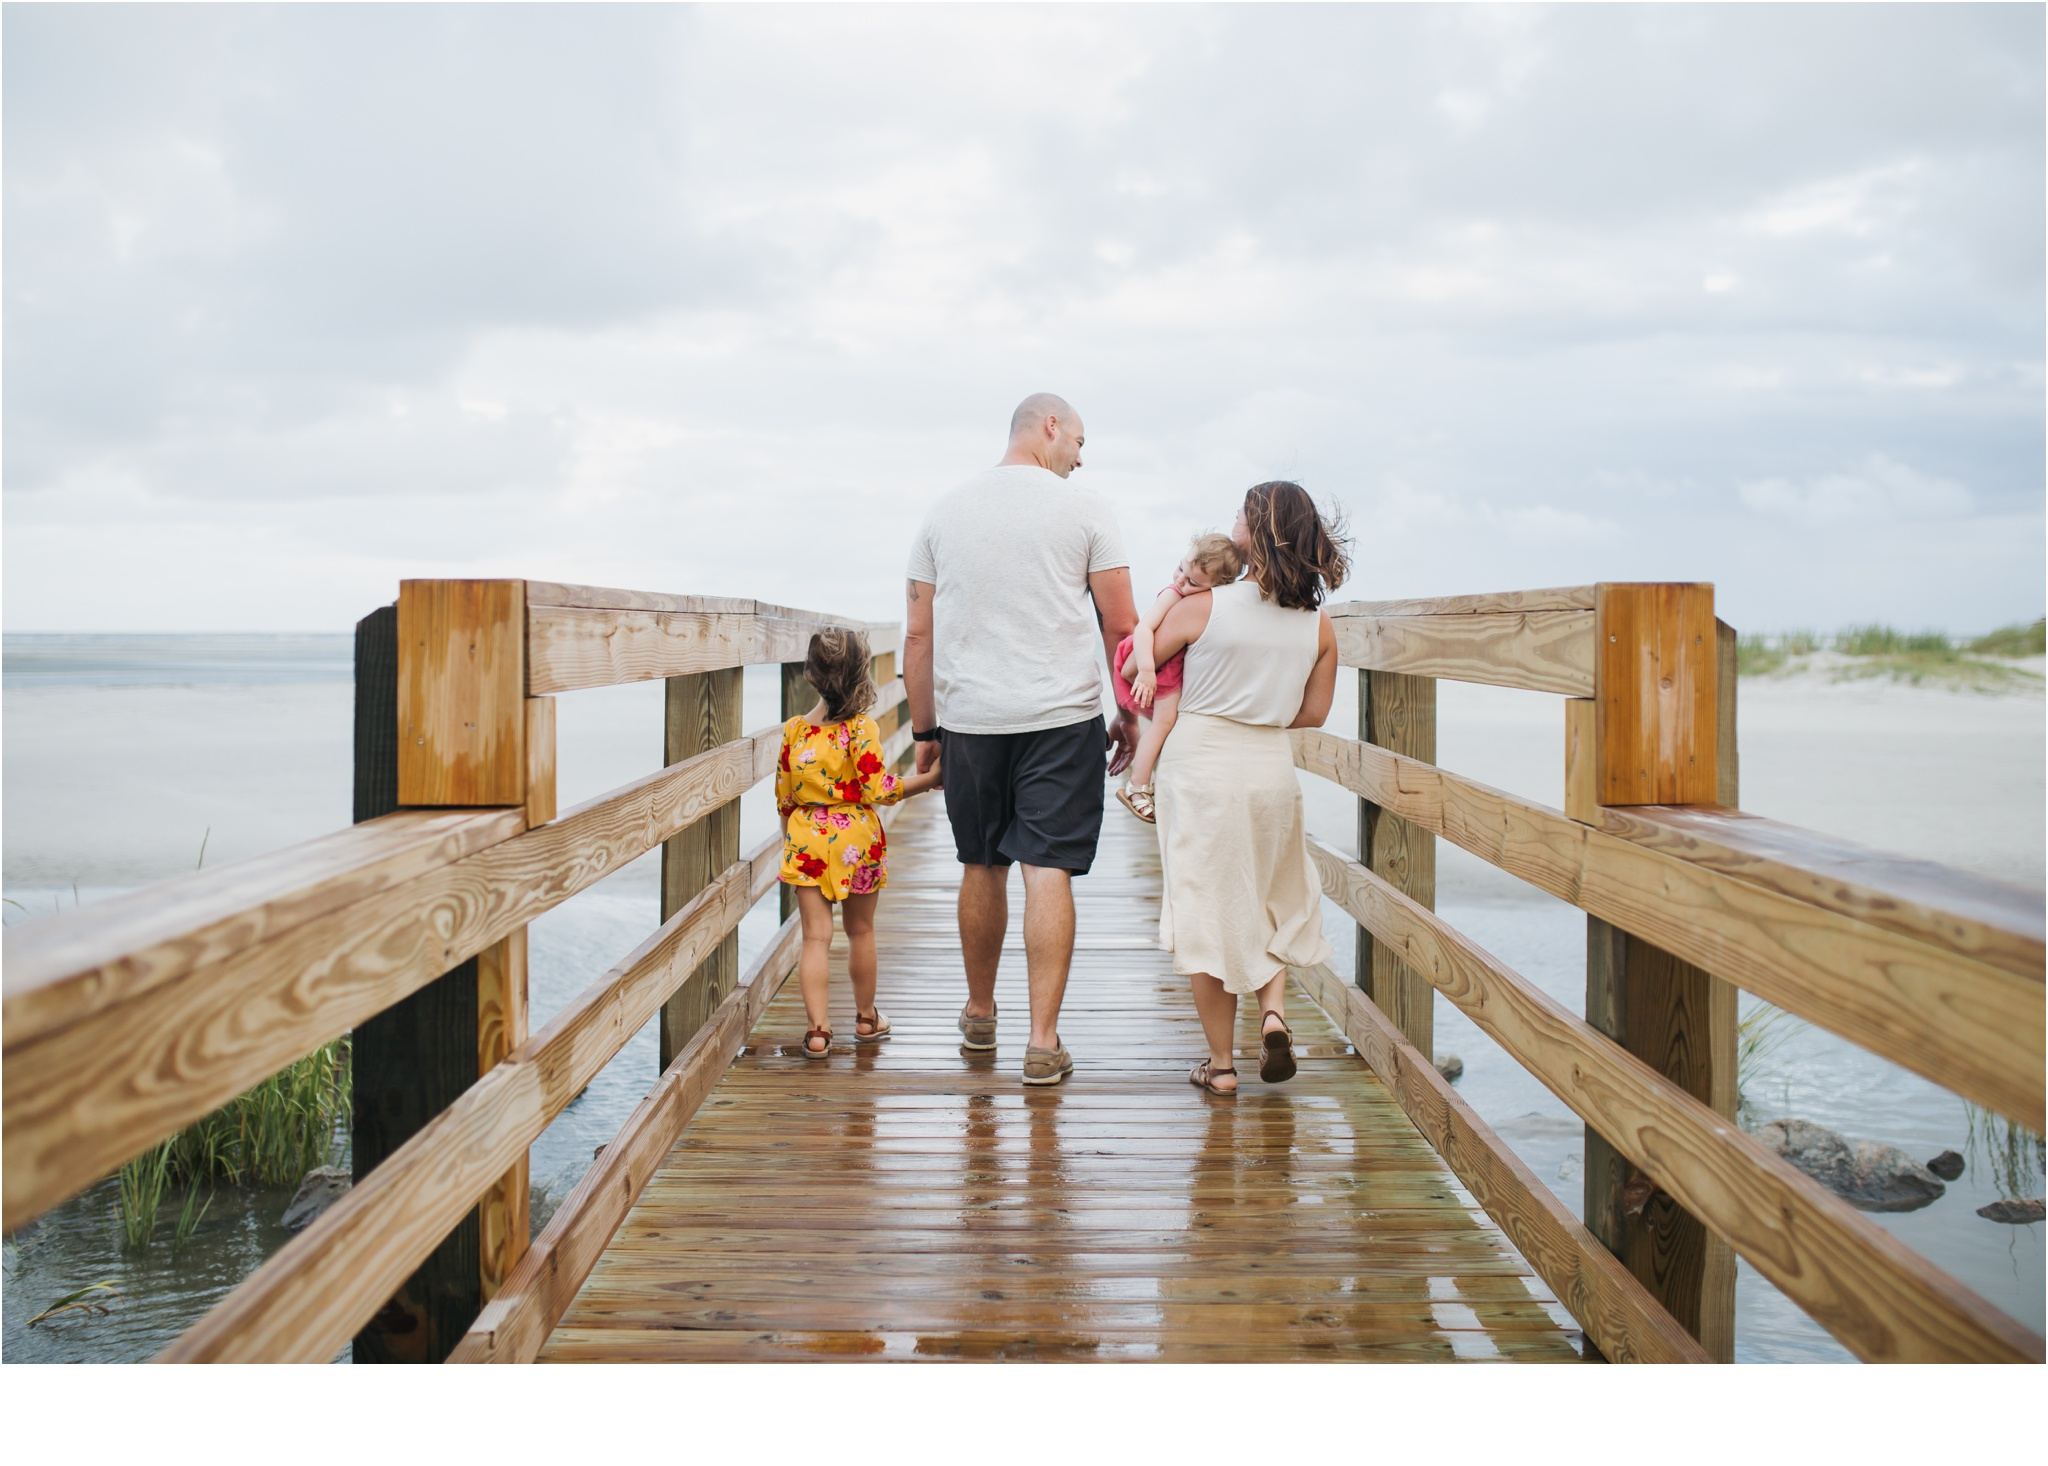 Rainey_Gregg_Photography_St._Simons_Island_Georgia_California_Wedding_Portrait_Photography_1387.jpg